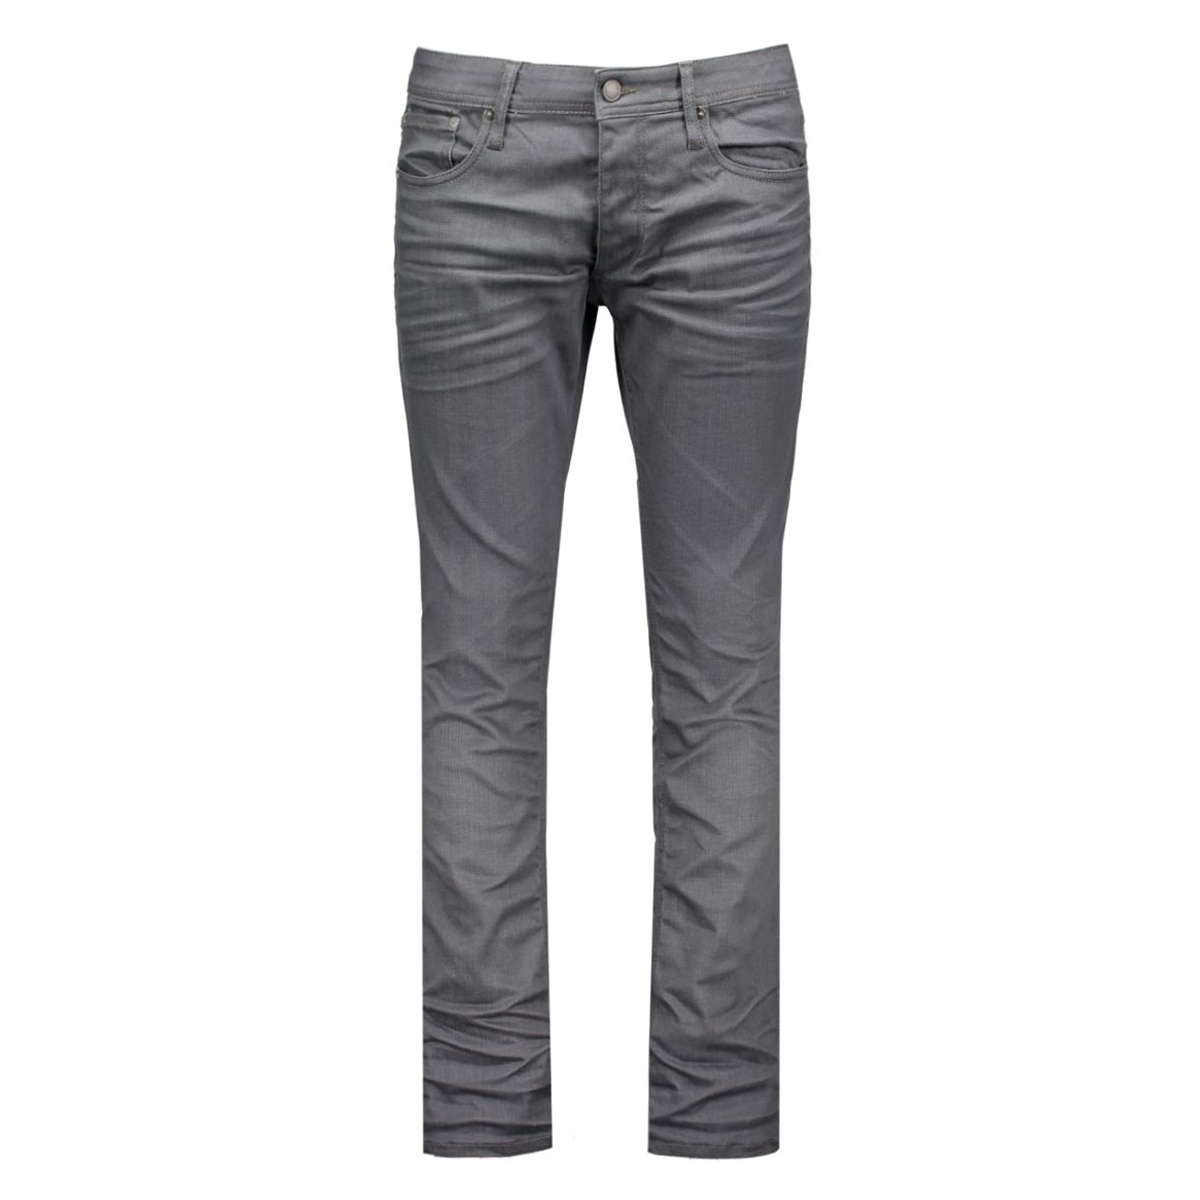 jjtim jjoriginal 920 lid noos 12096837 jack & jones jeans grey denim